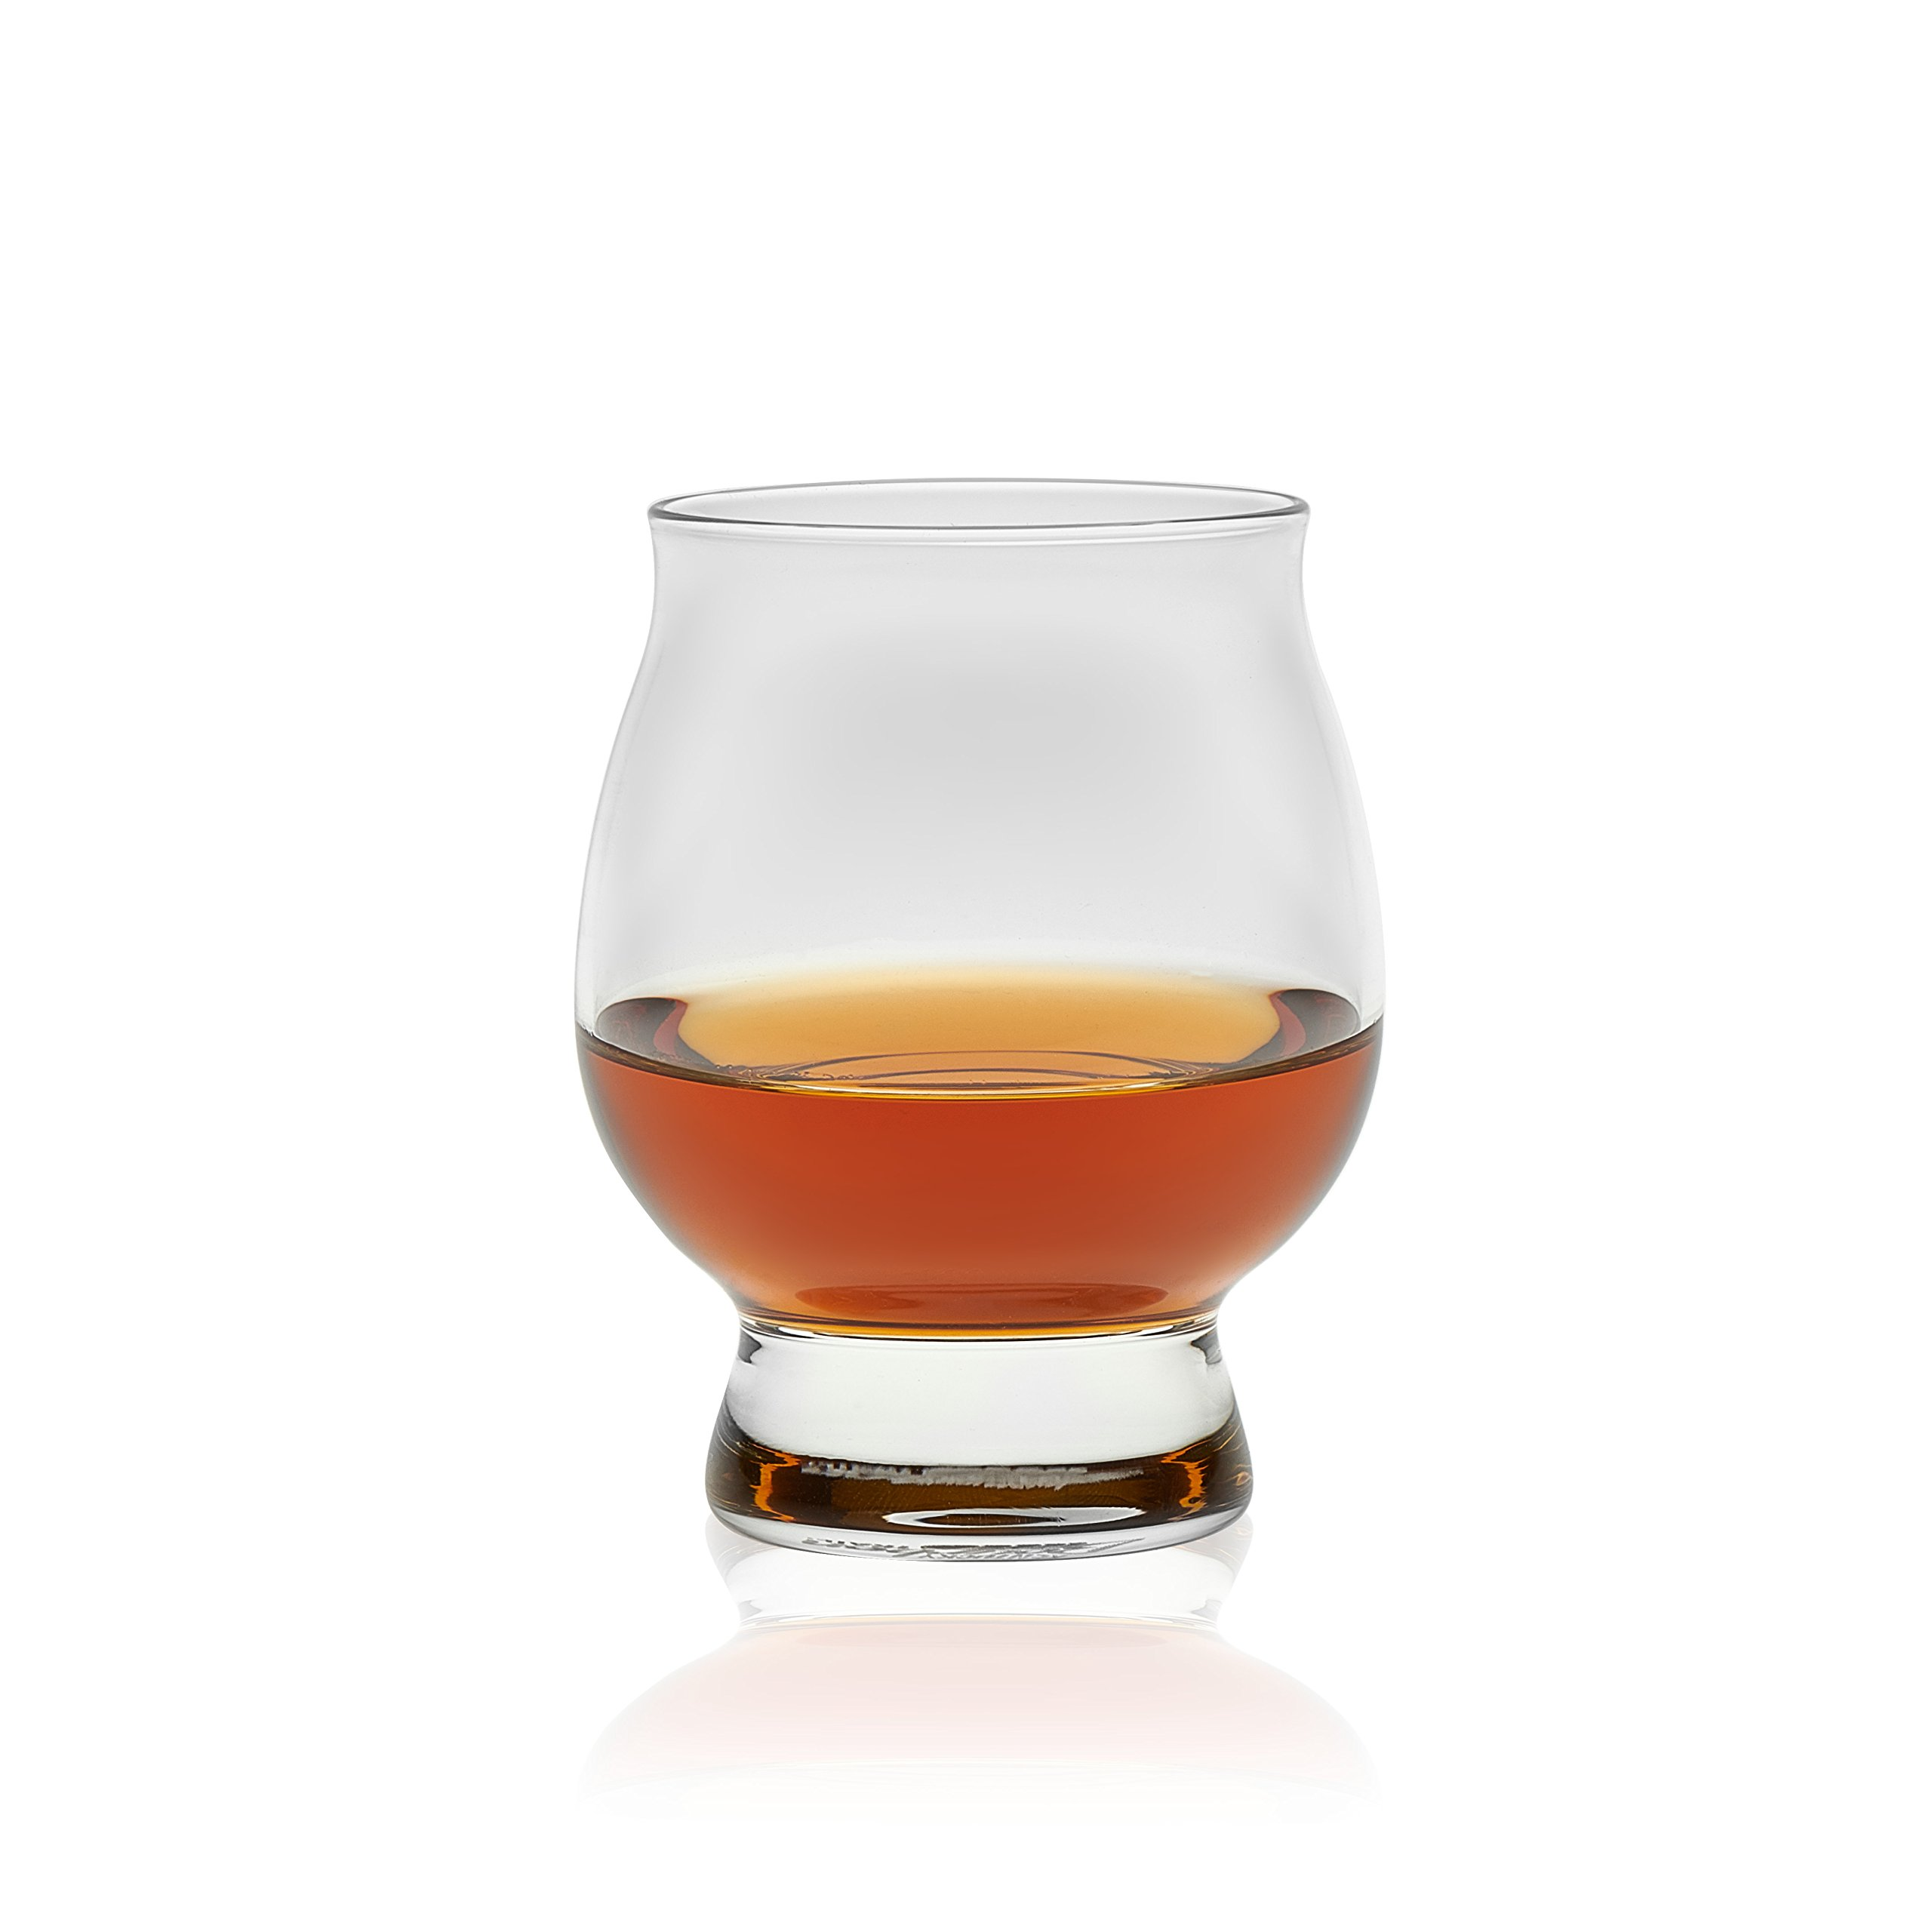 Libbey Signature Kentucky Bourbon Trail, Official Whiskey Tasting Glass Set, 8-ounce, Made in USA (Set of 4)